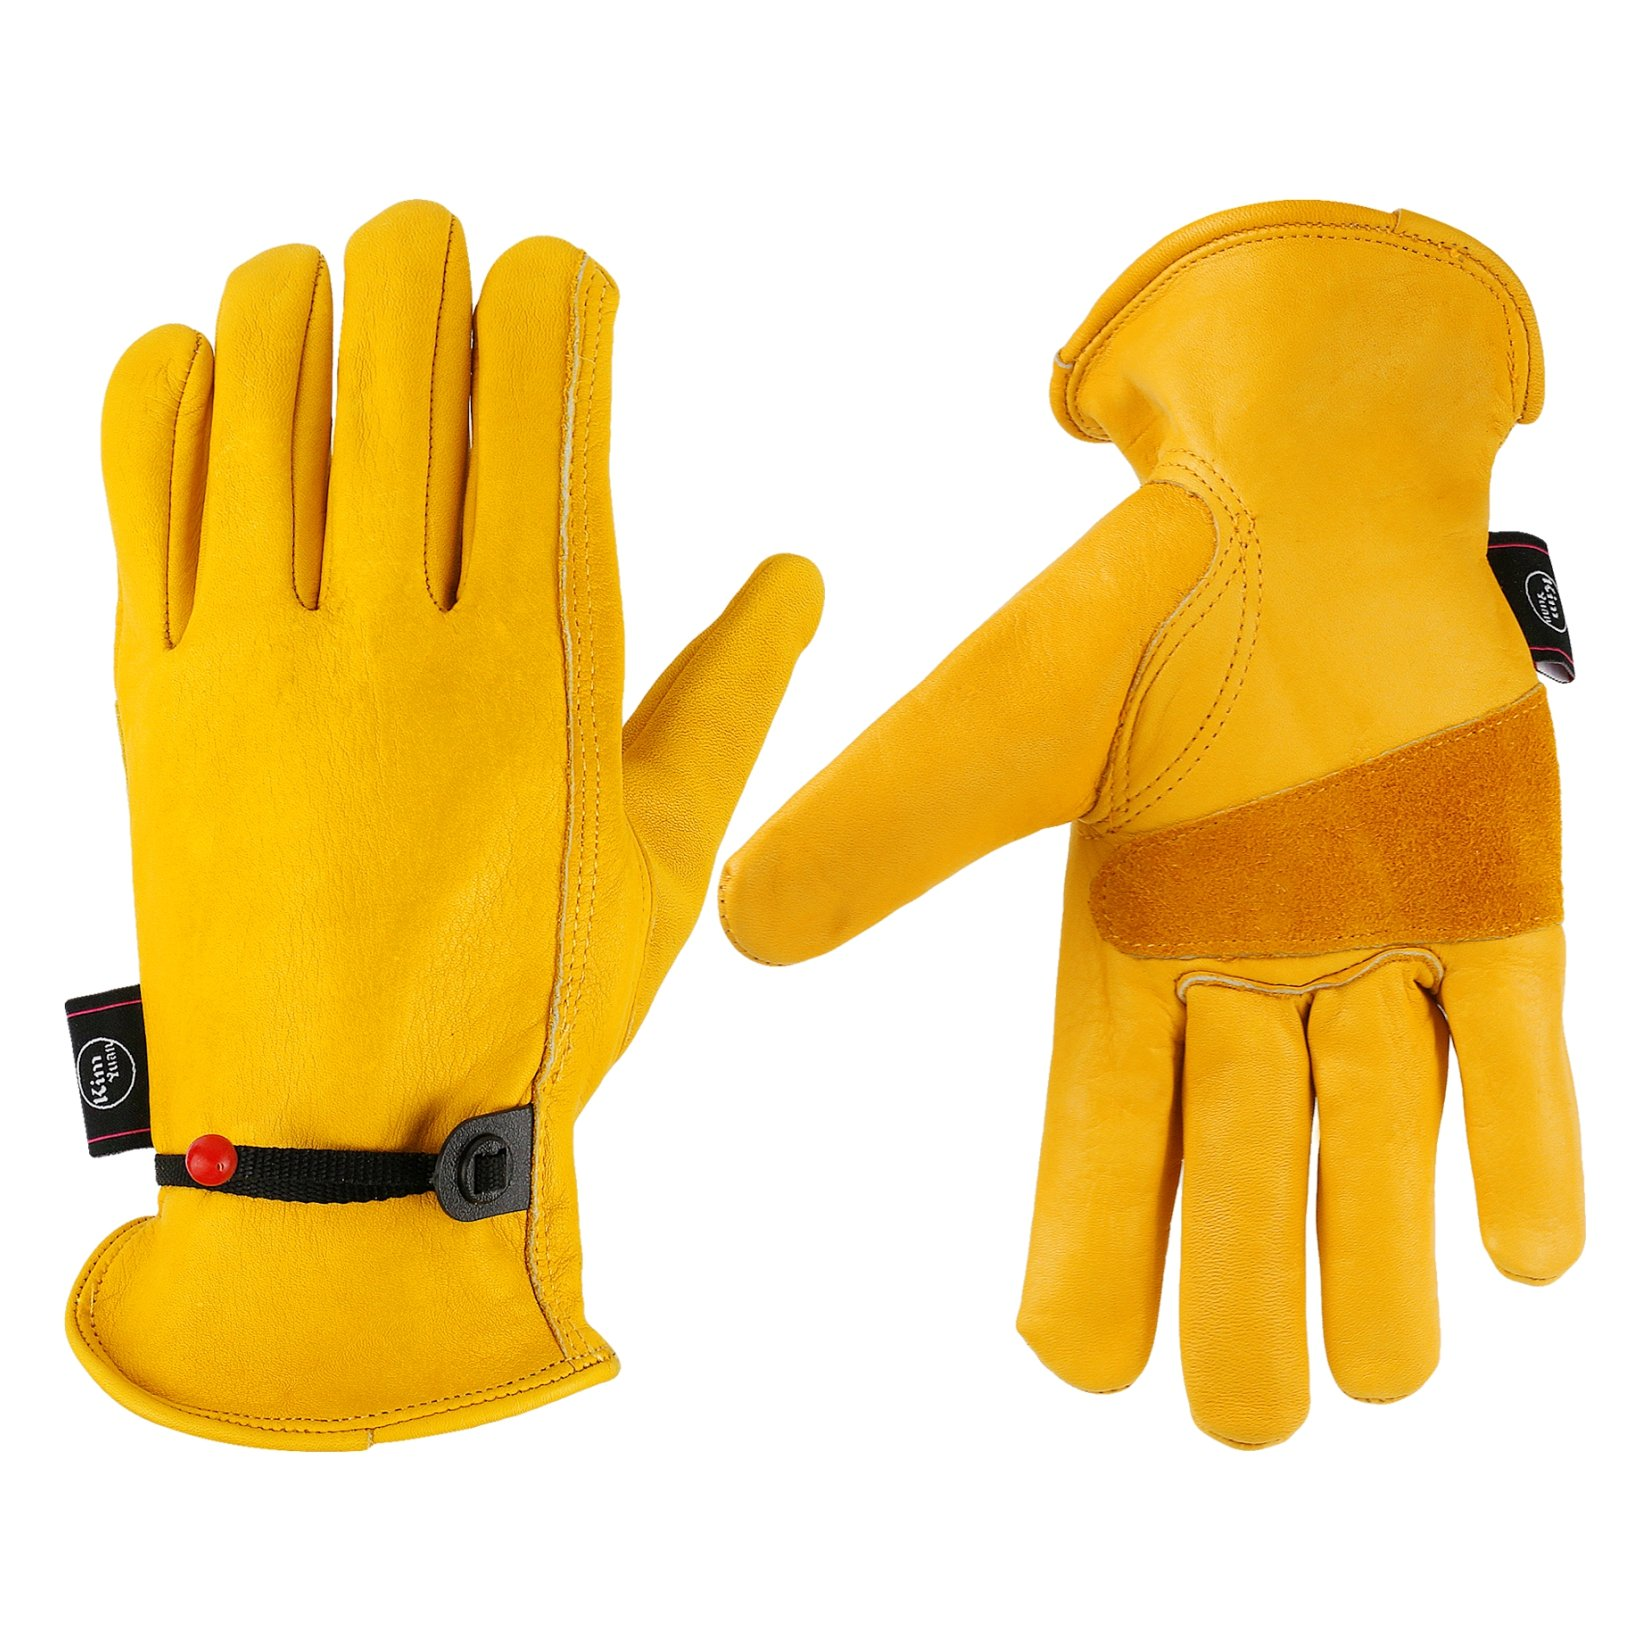 Facility Maintenance & Safety Garden Clothing & Gear Scan Thermal Latex Coated Gloves Size 8 Medium Fine Craftsmanship